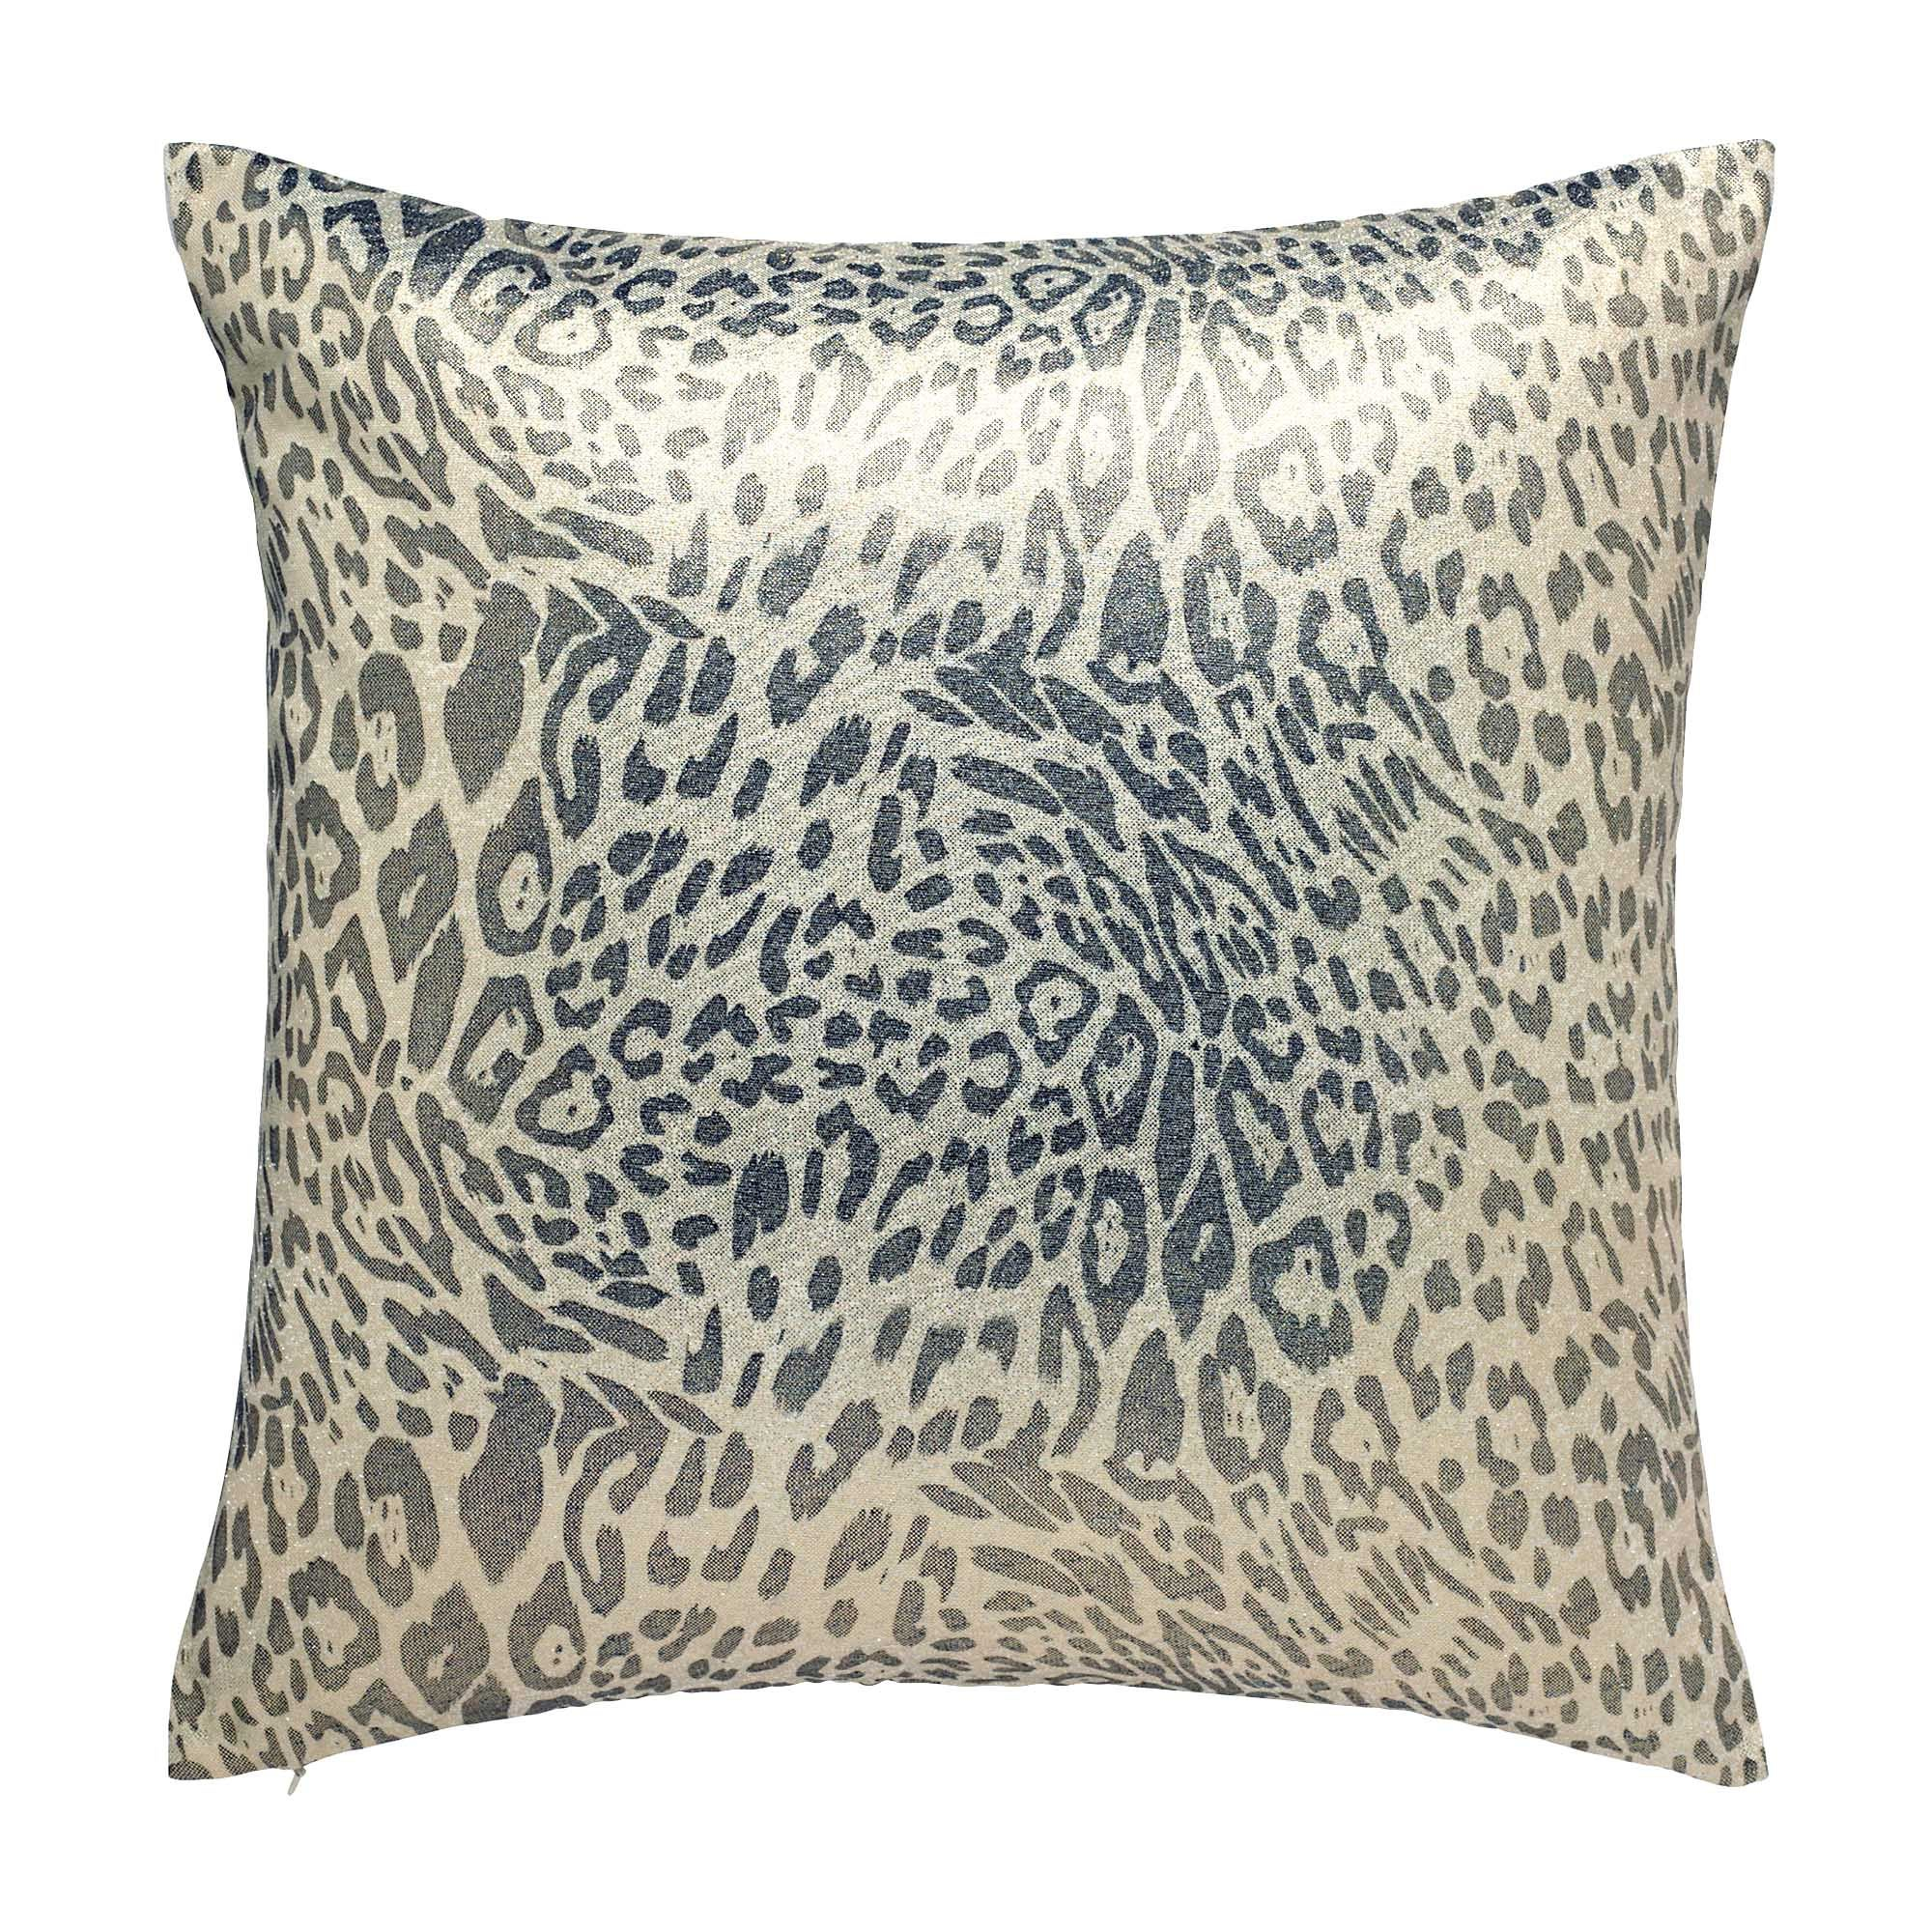 Metallic Leopard Print Cushion